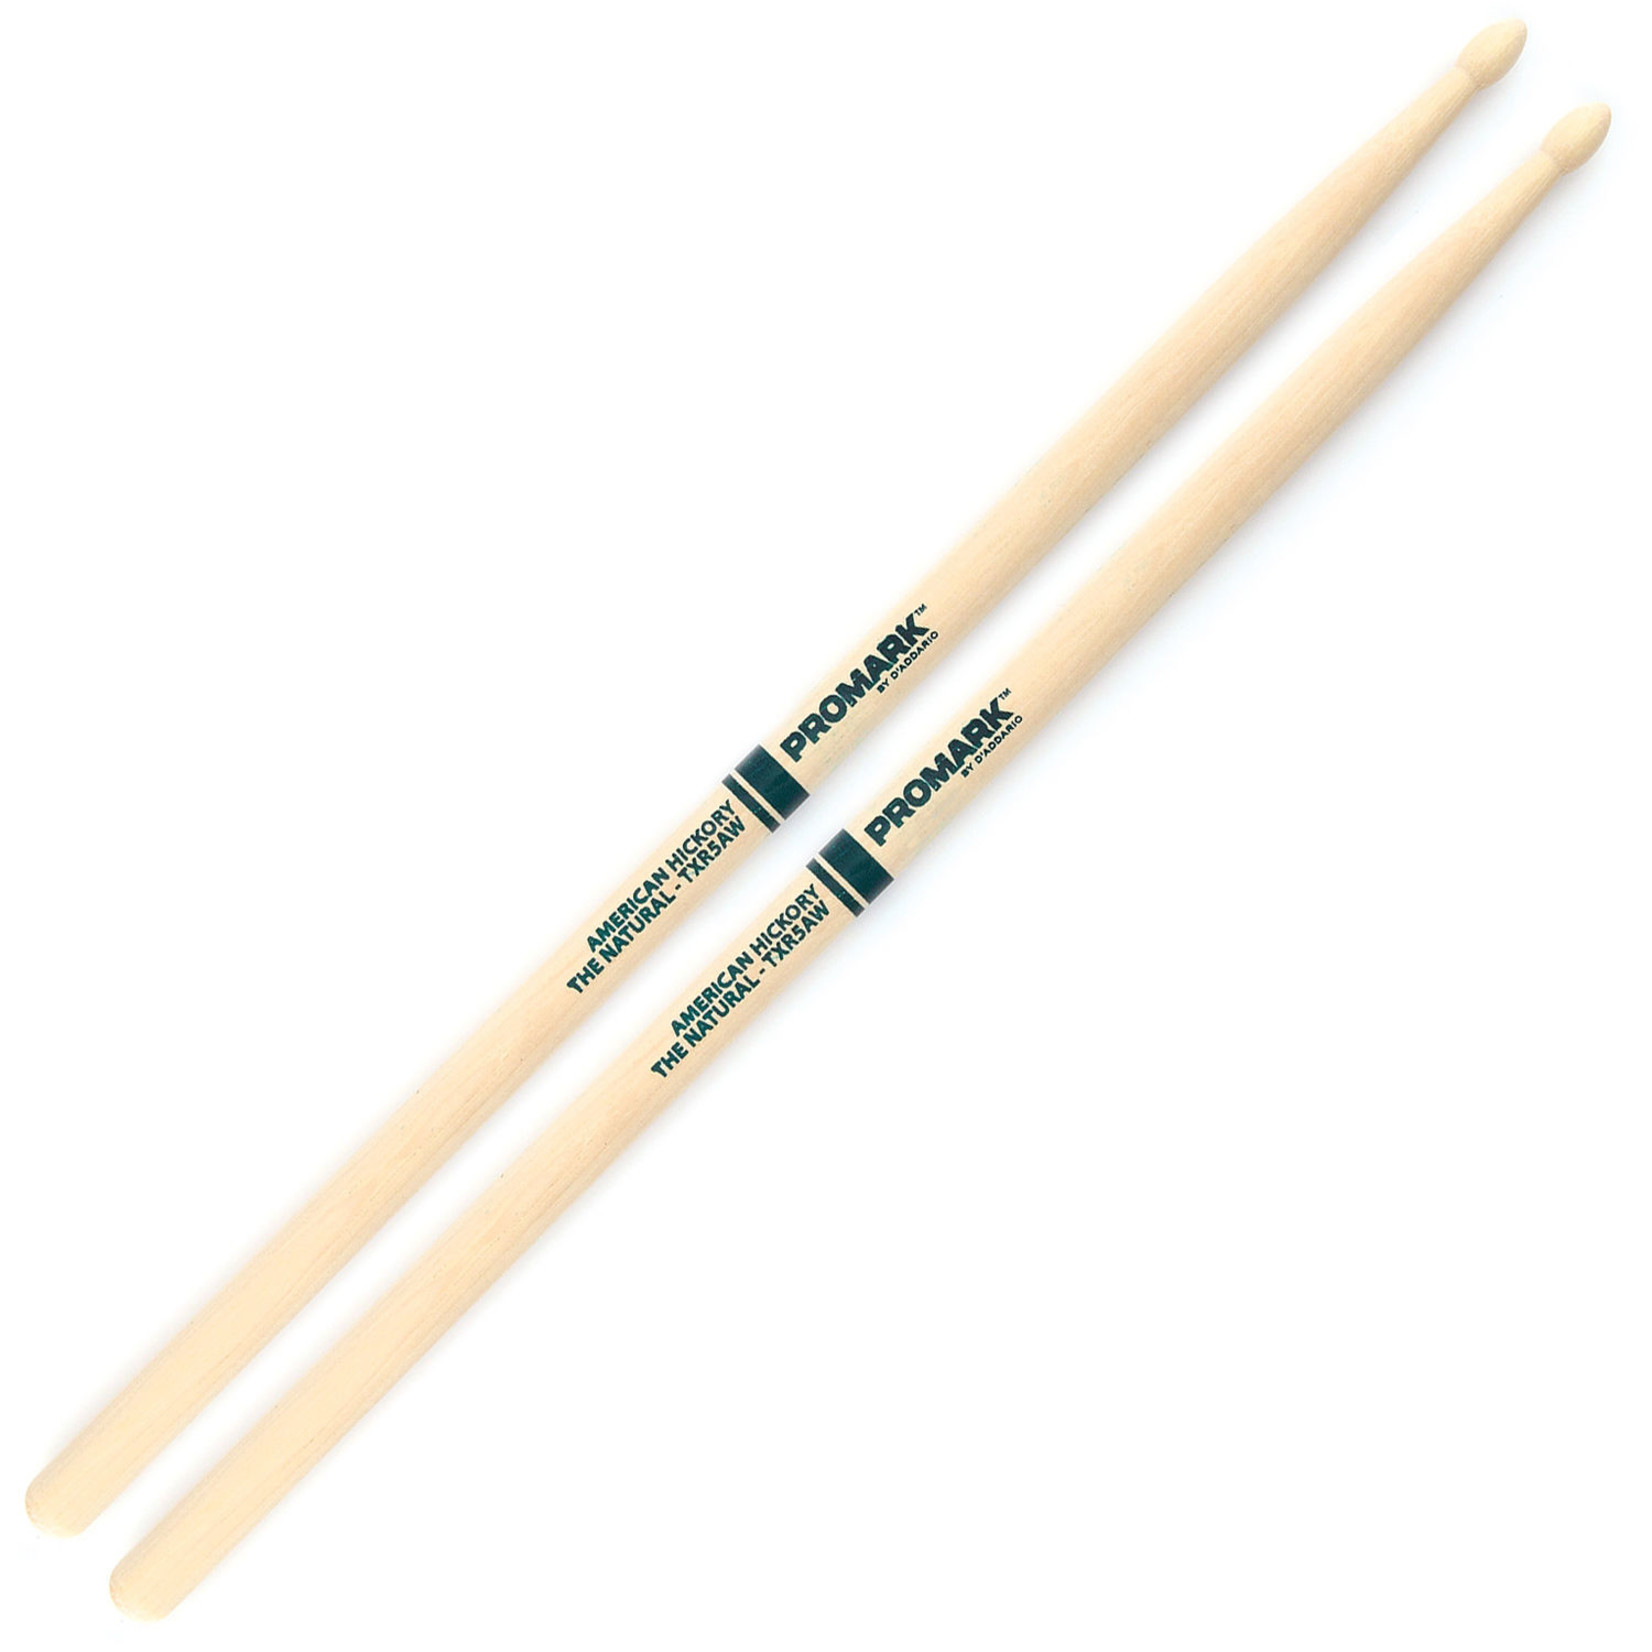 Promark ProMark Classic Forward 5A Raw Hickory, Oval Wood Tip Drumstick